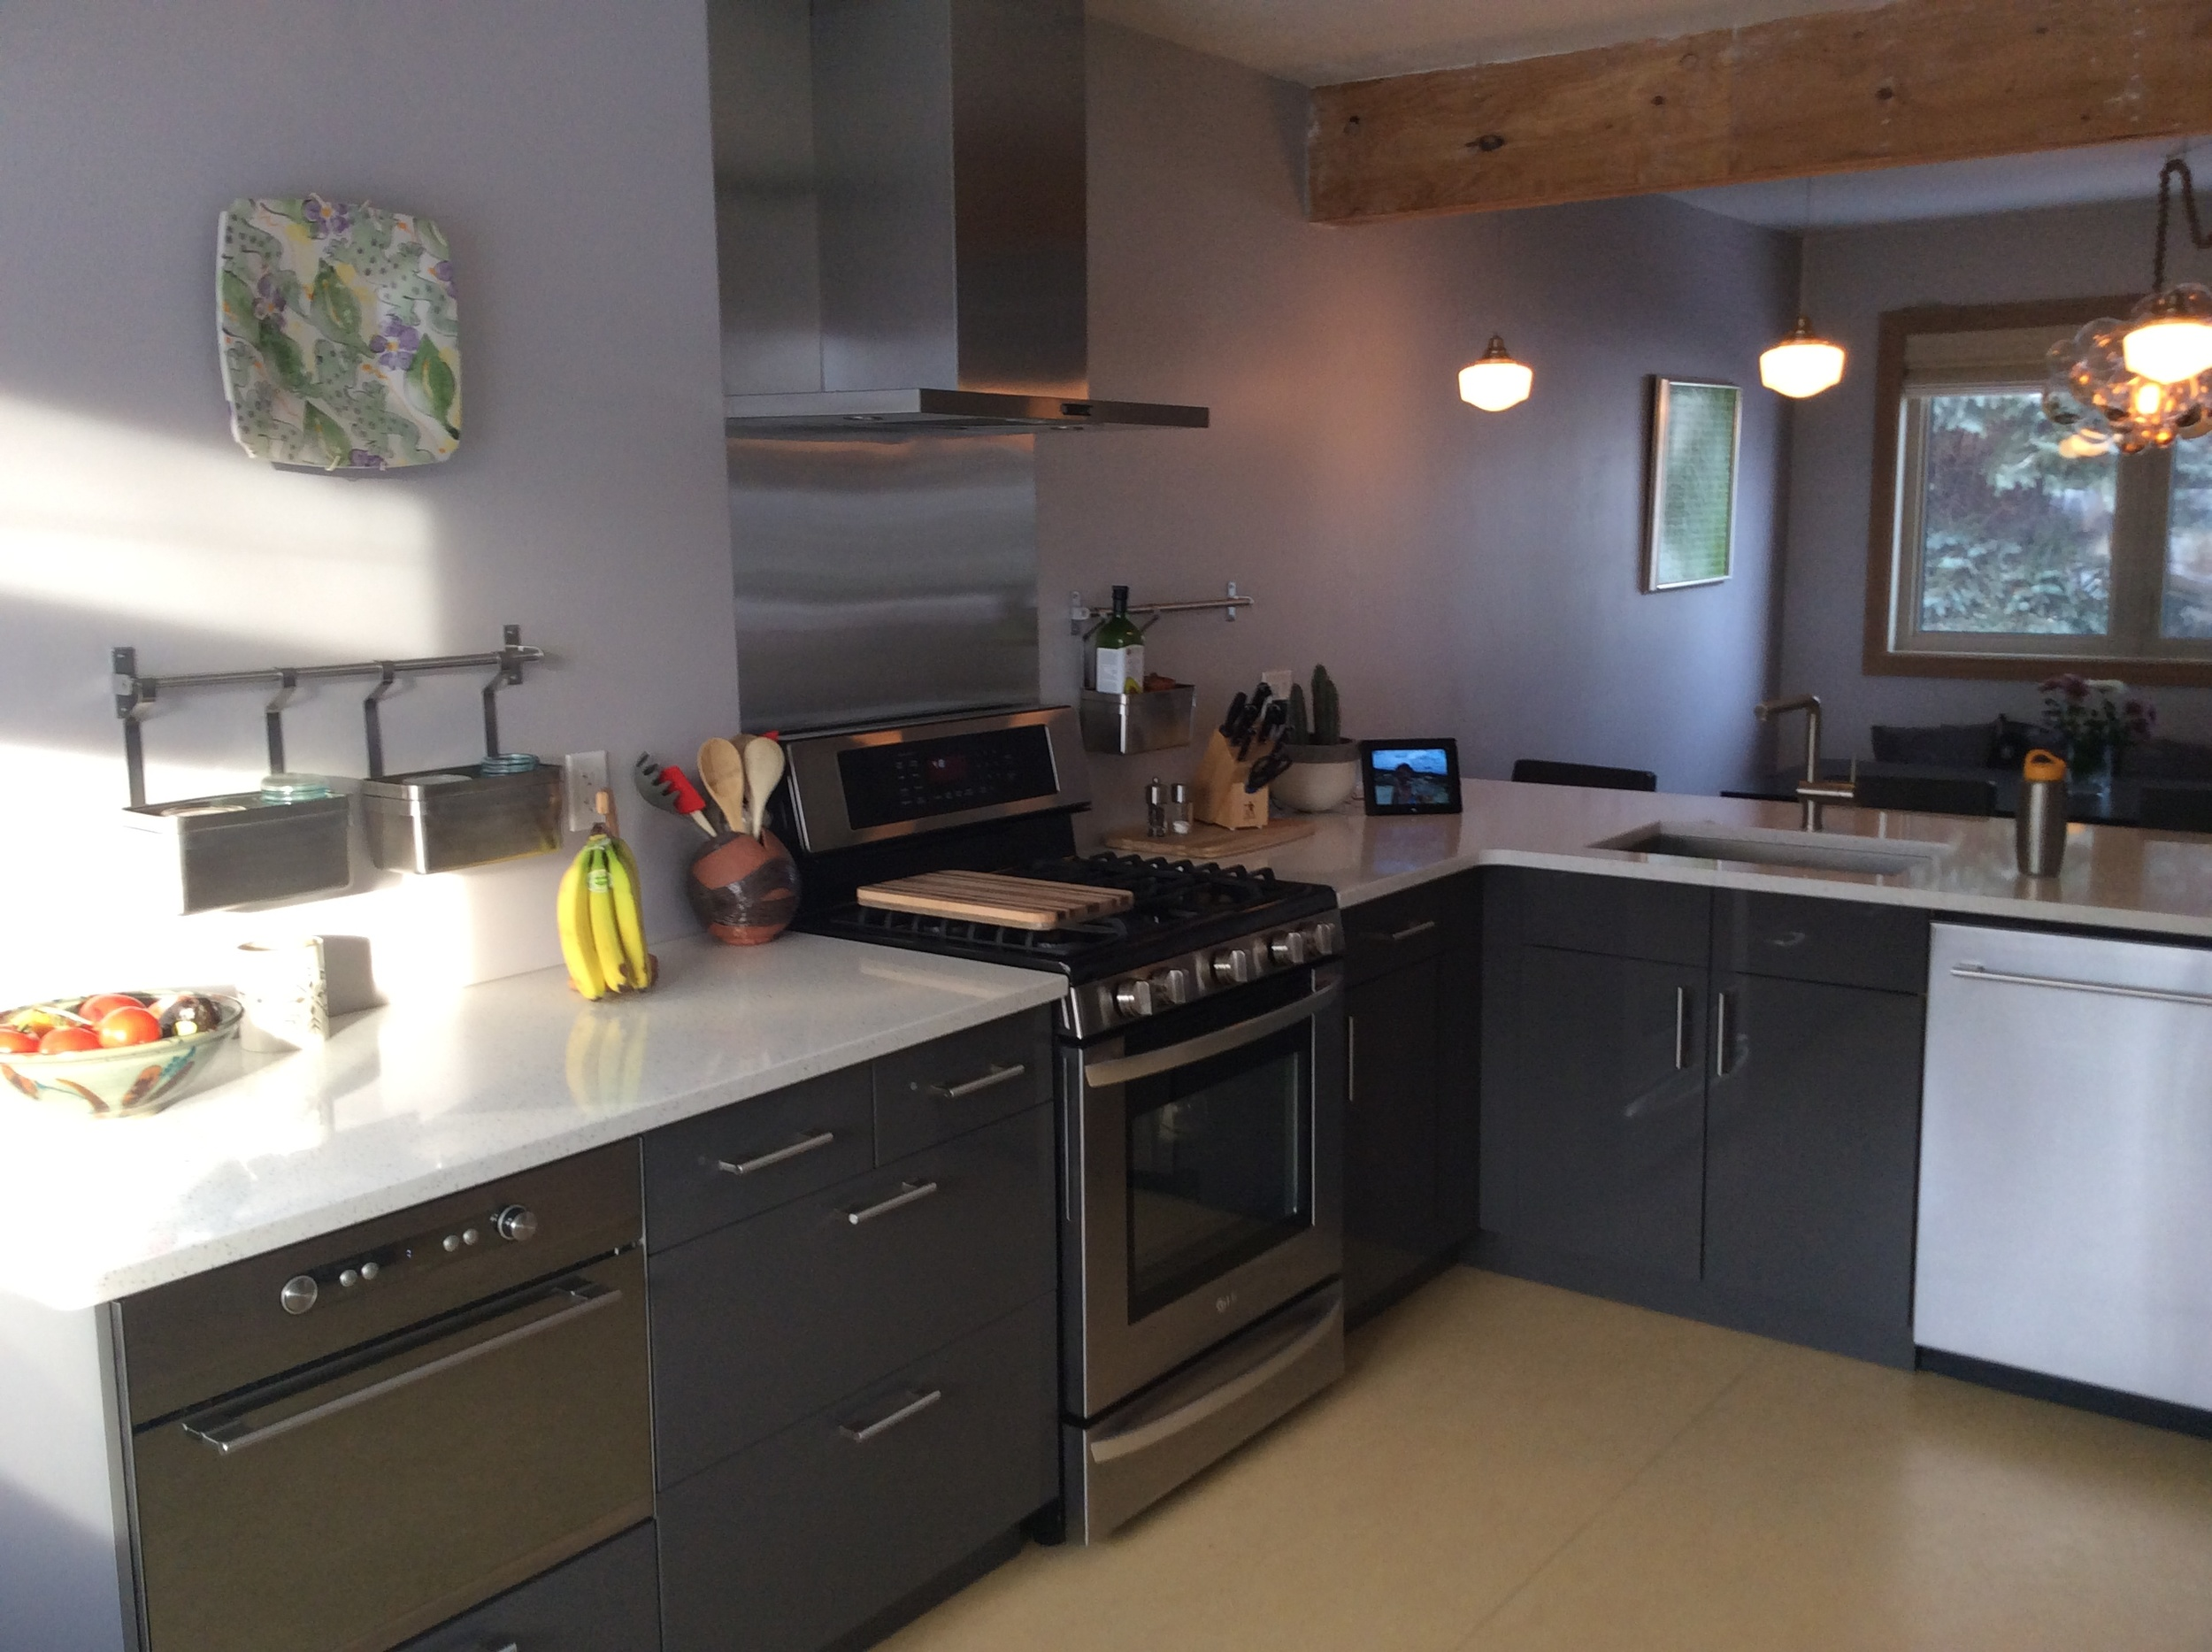 Ikea cabinets, Stainless steel backsplash, rustic wood support beam, quartz countertops, schoolhouse pendant lights.